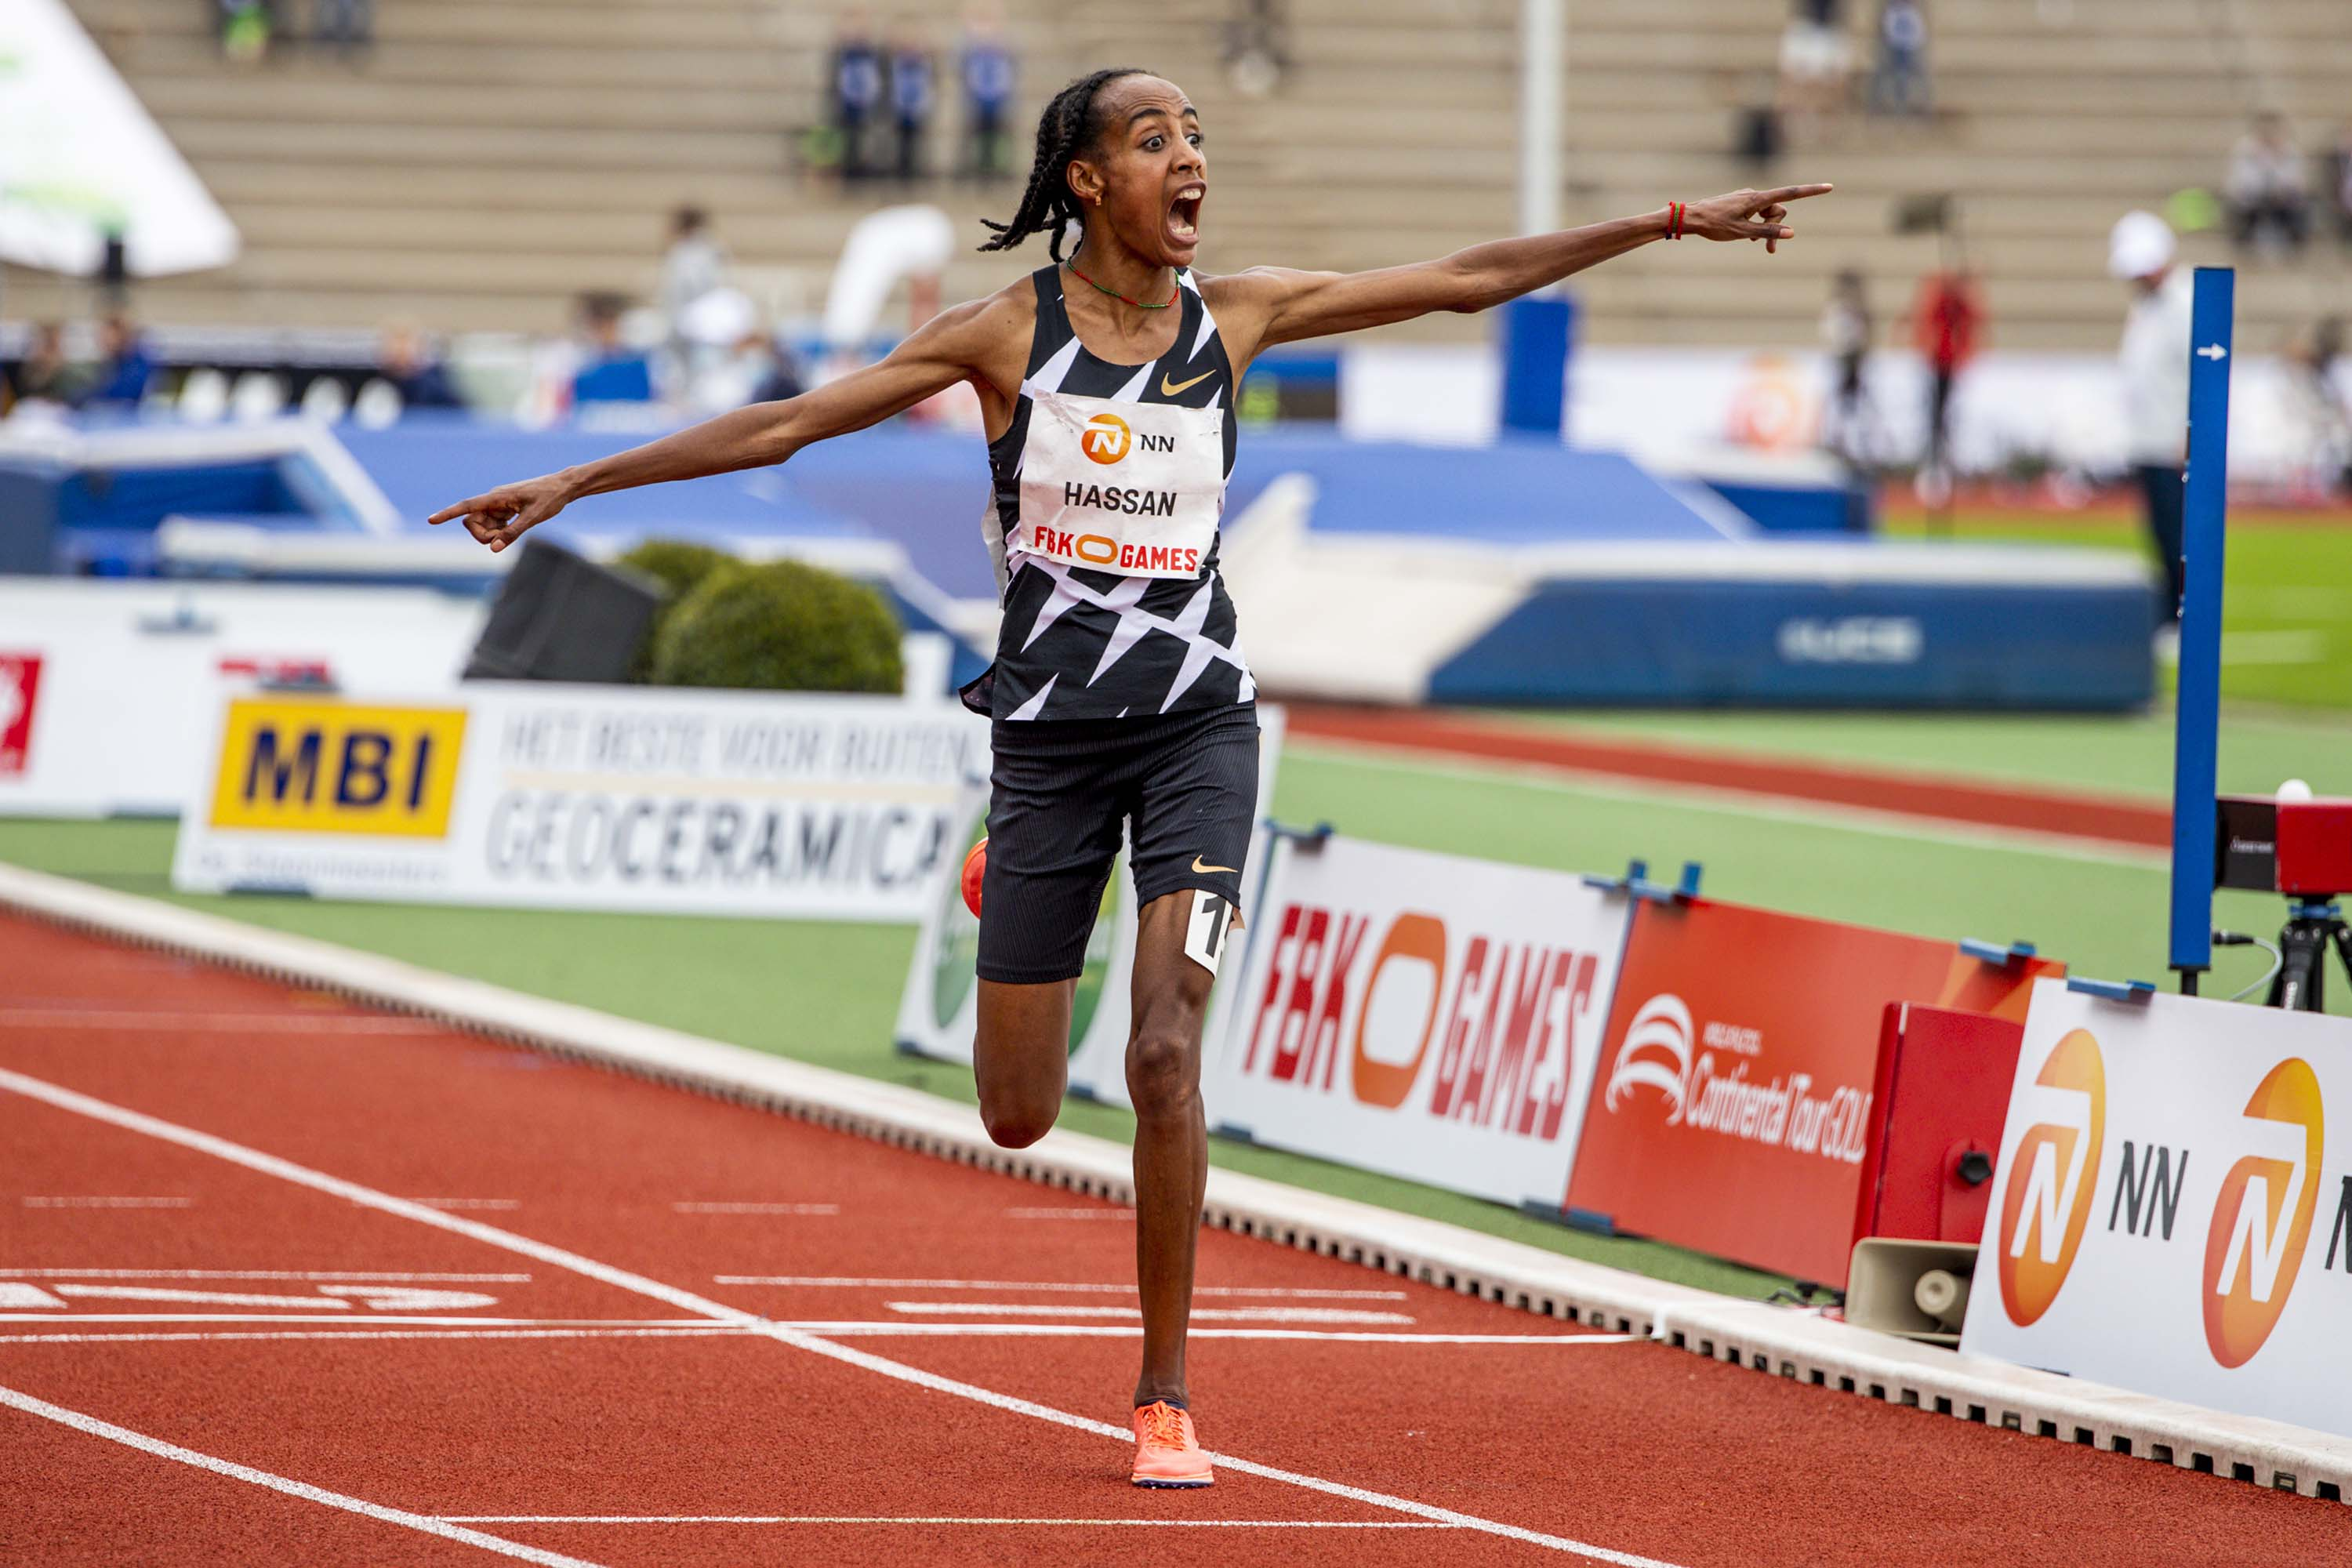 Letesenbet Gidey breaks Sifan Hassan's two-day-old 10,000m world record